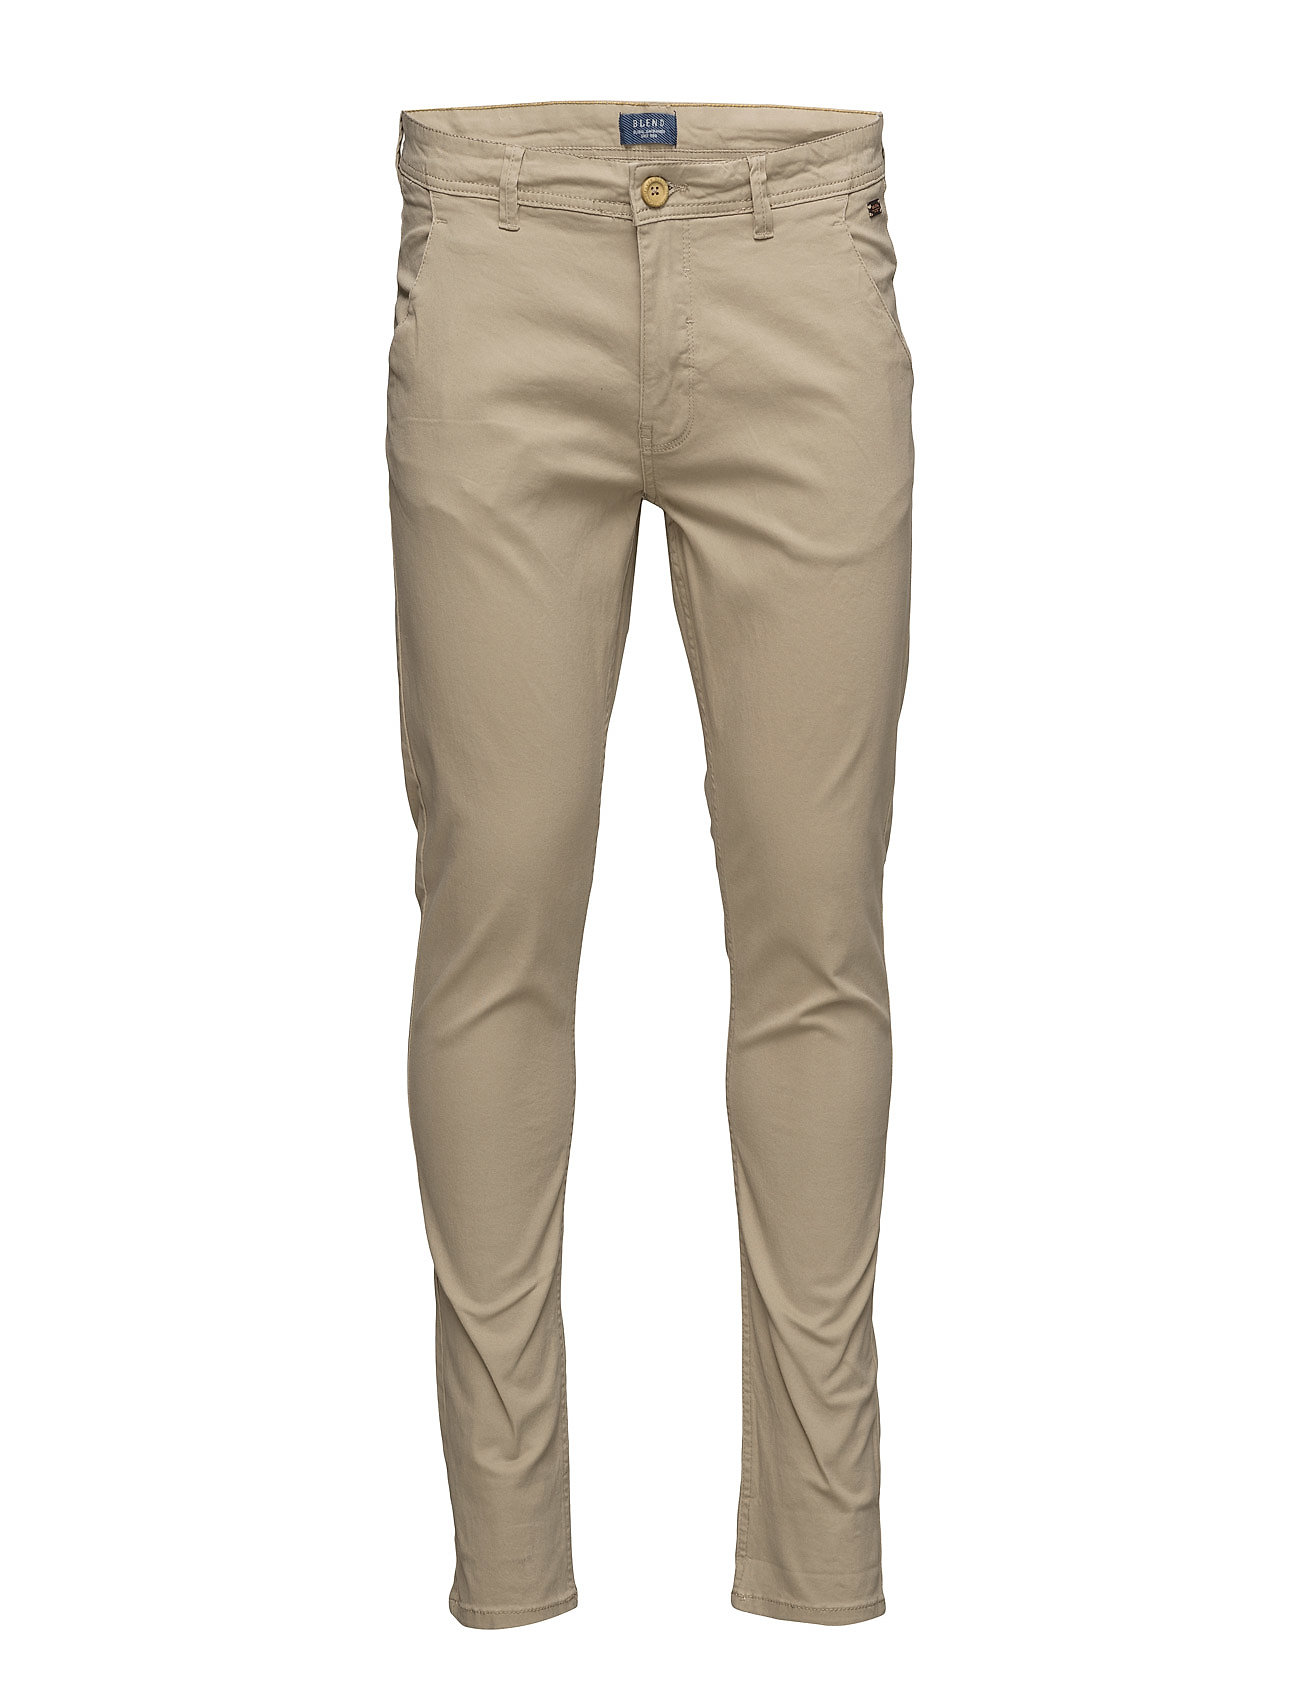 Blend BHNATAN pants NOOS - BEIGE BROWN